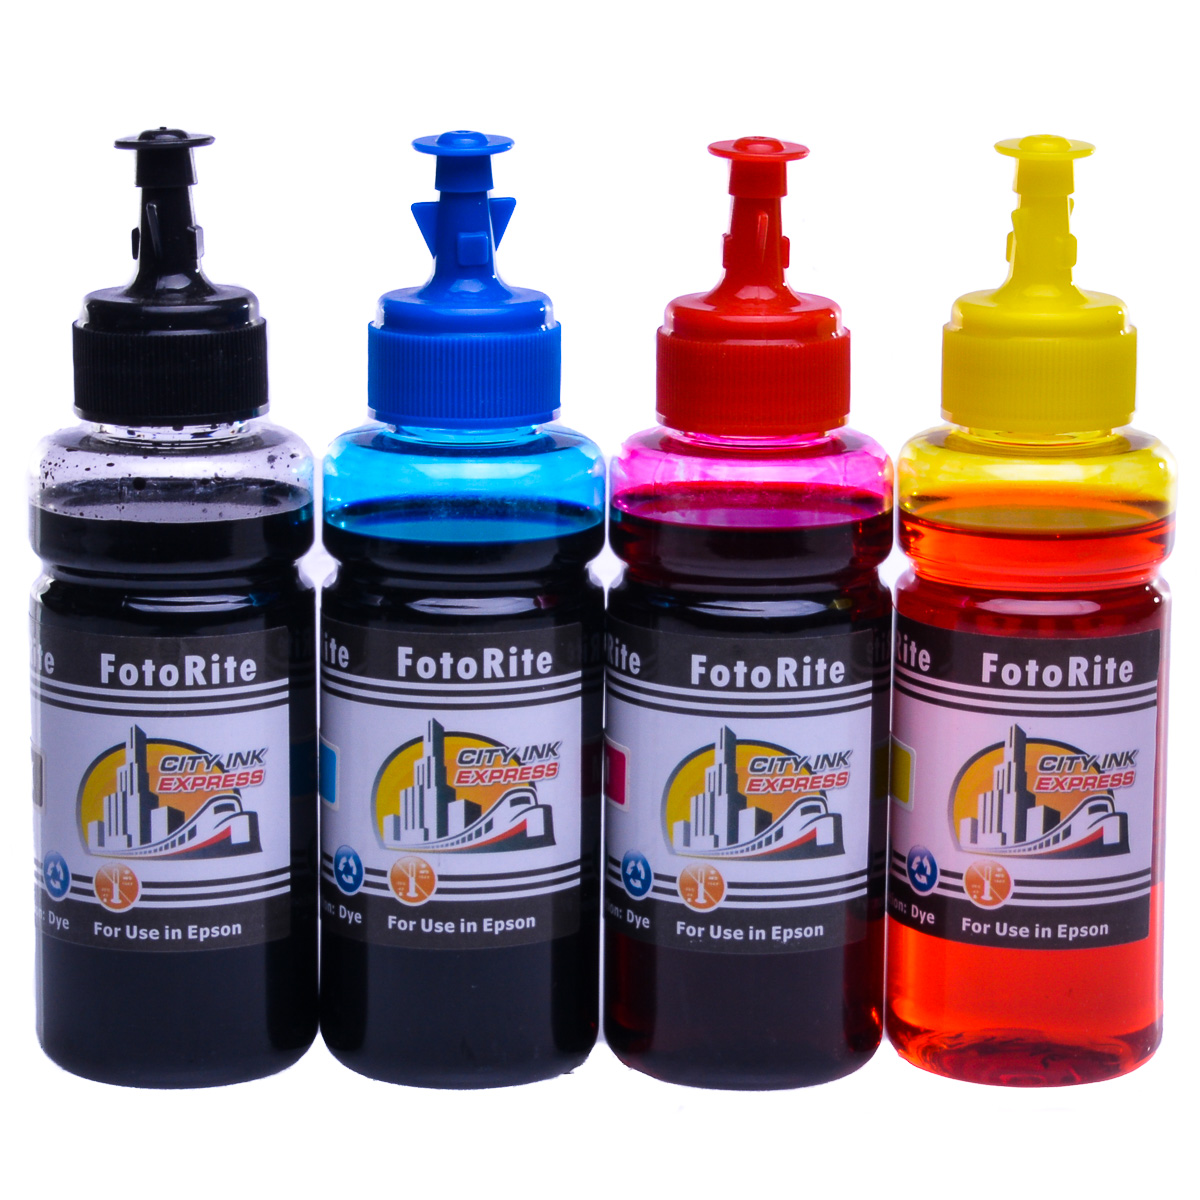 Cheap Multipack dye ink refill replaces Epson WF-3520dwf